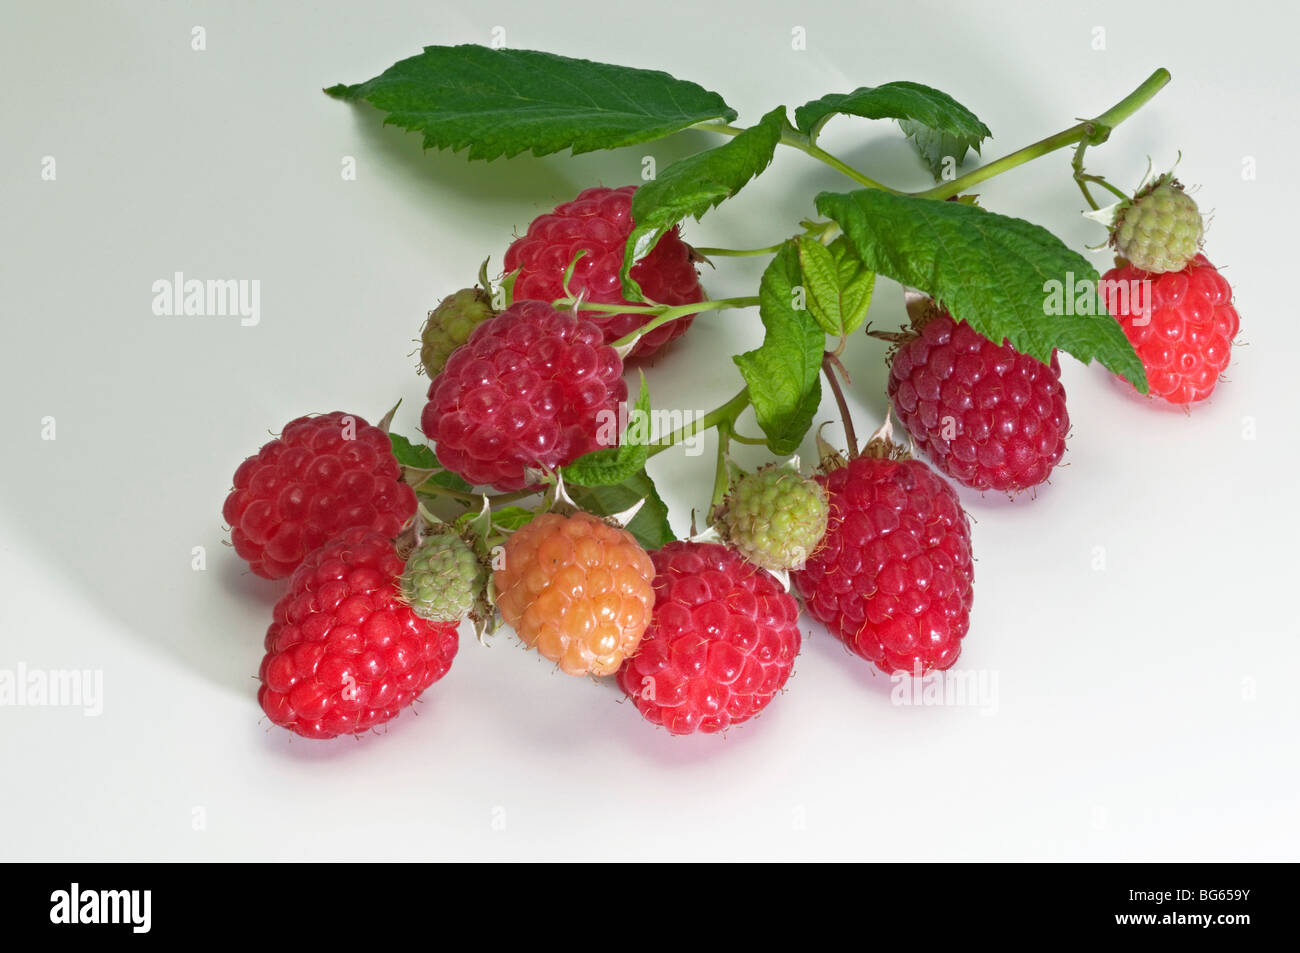 Raspberry (Rubus idaeus). Twig with berries and leaves, studio picture. - Stock Image